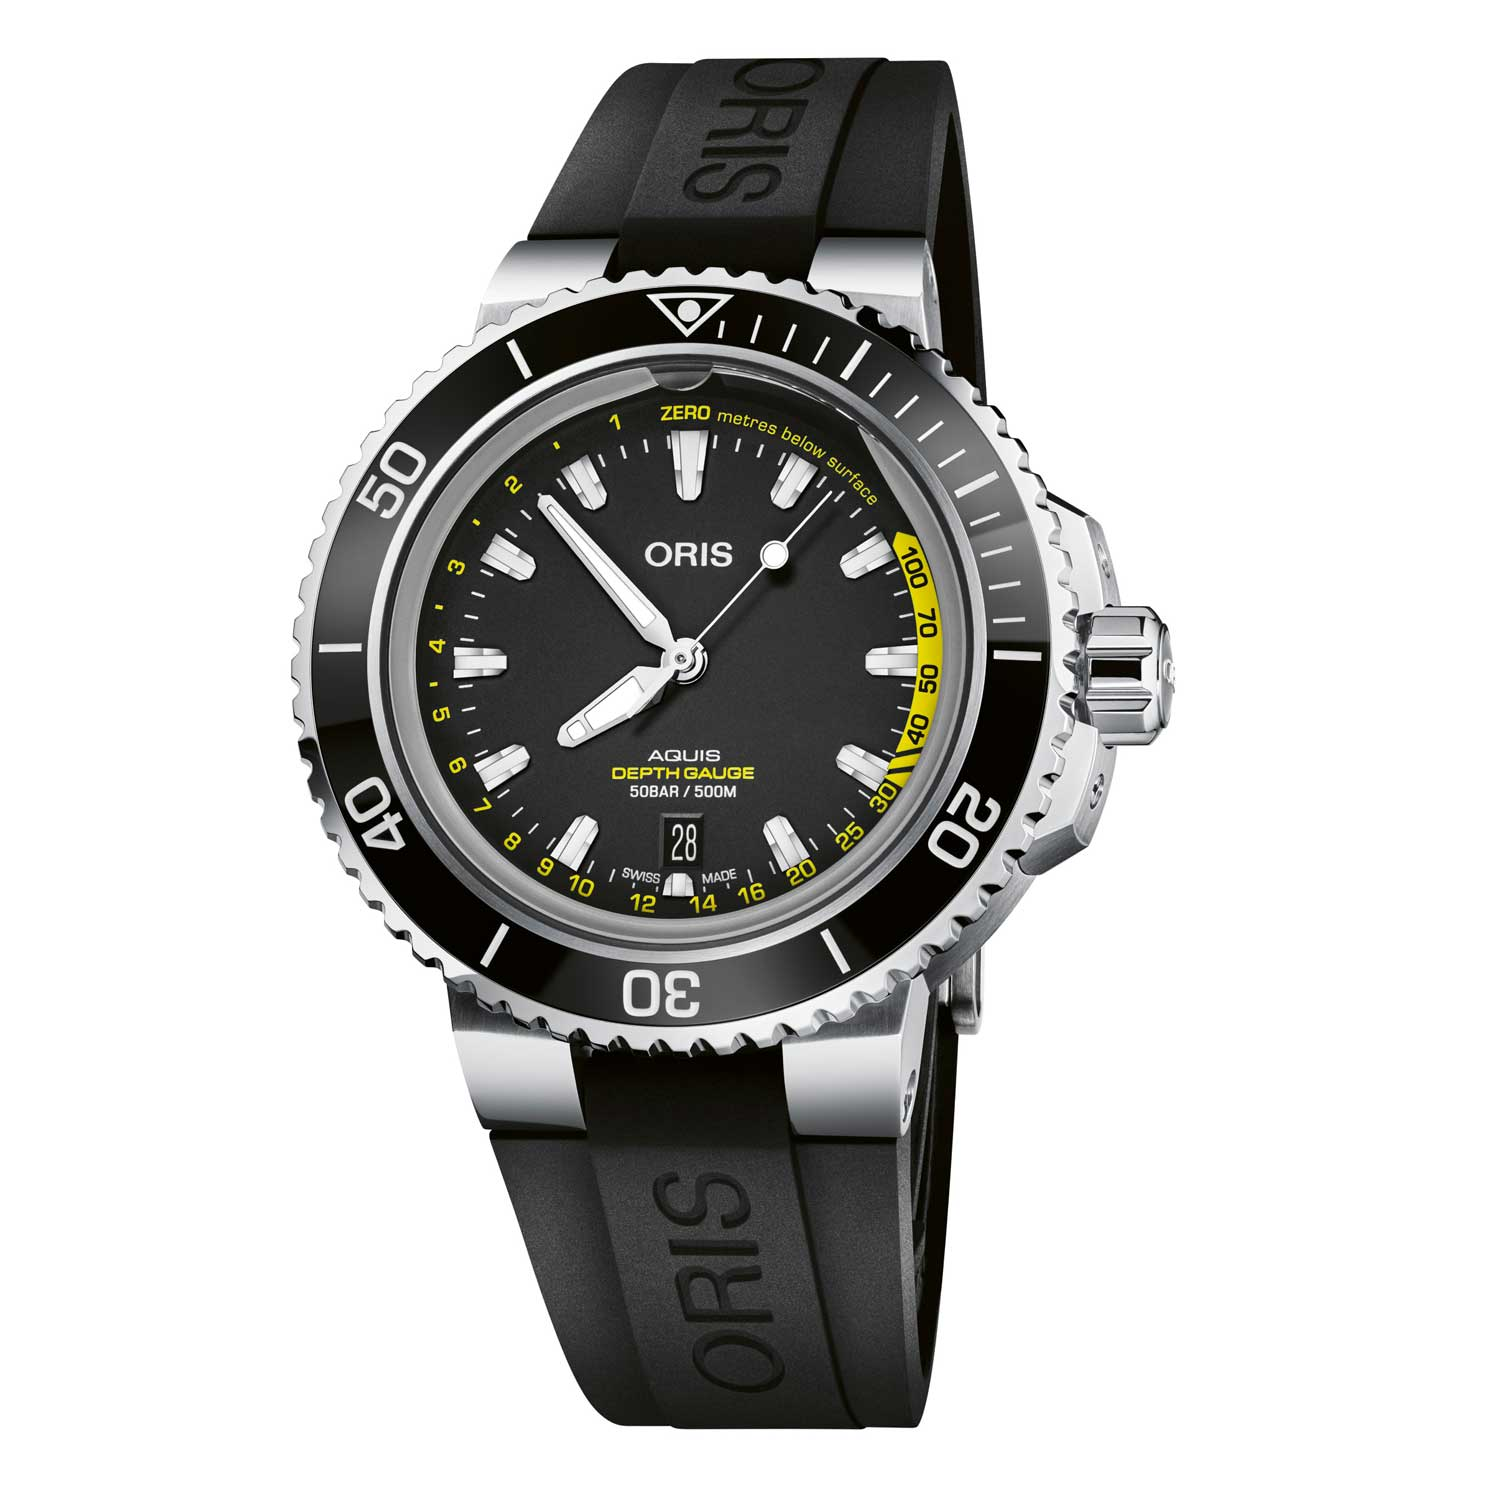 The Aquis Depth Gauge uses the scientific principles of the Boyle-Mariotte Law to create a gauge that clearly measures depth during a dive.